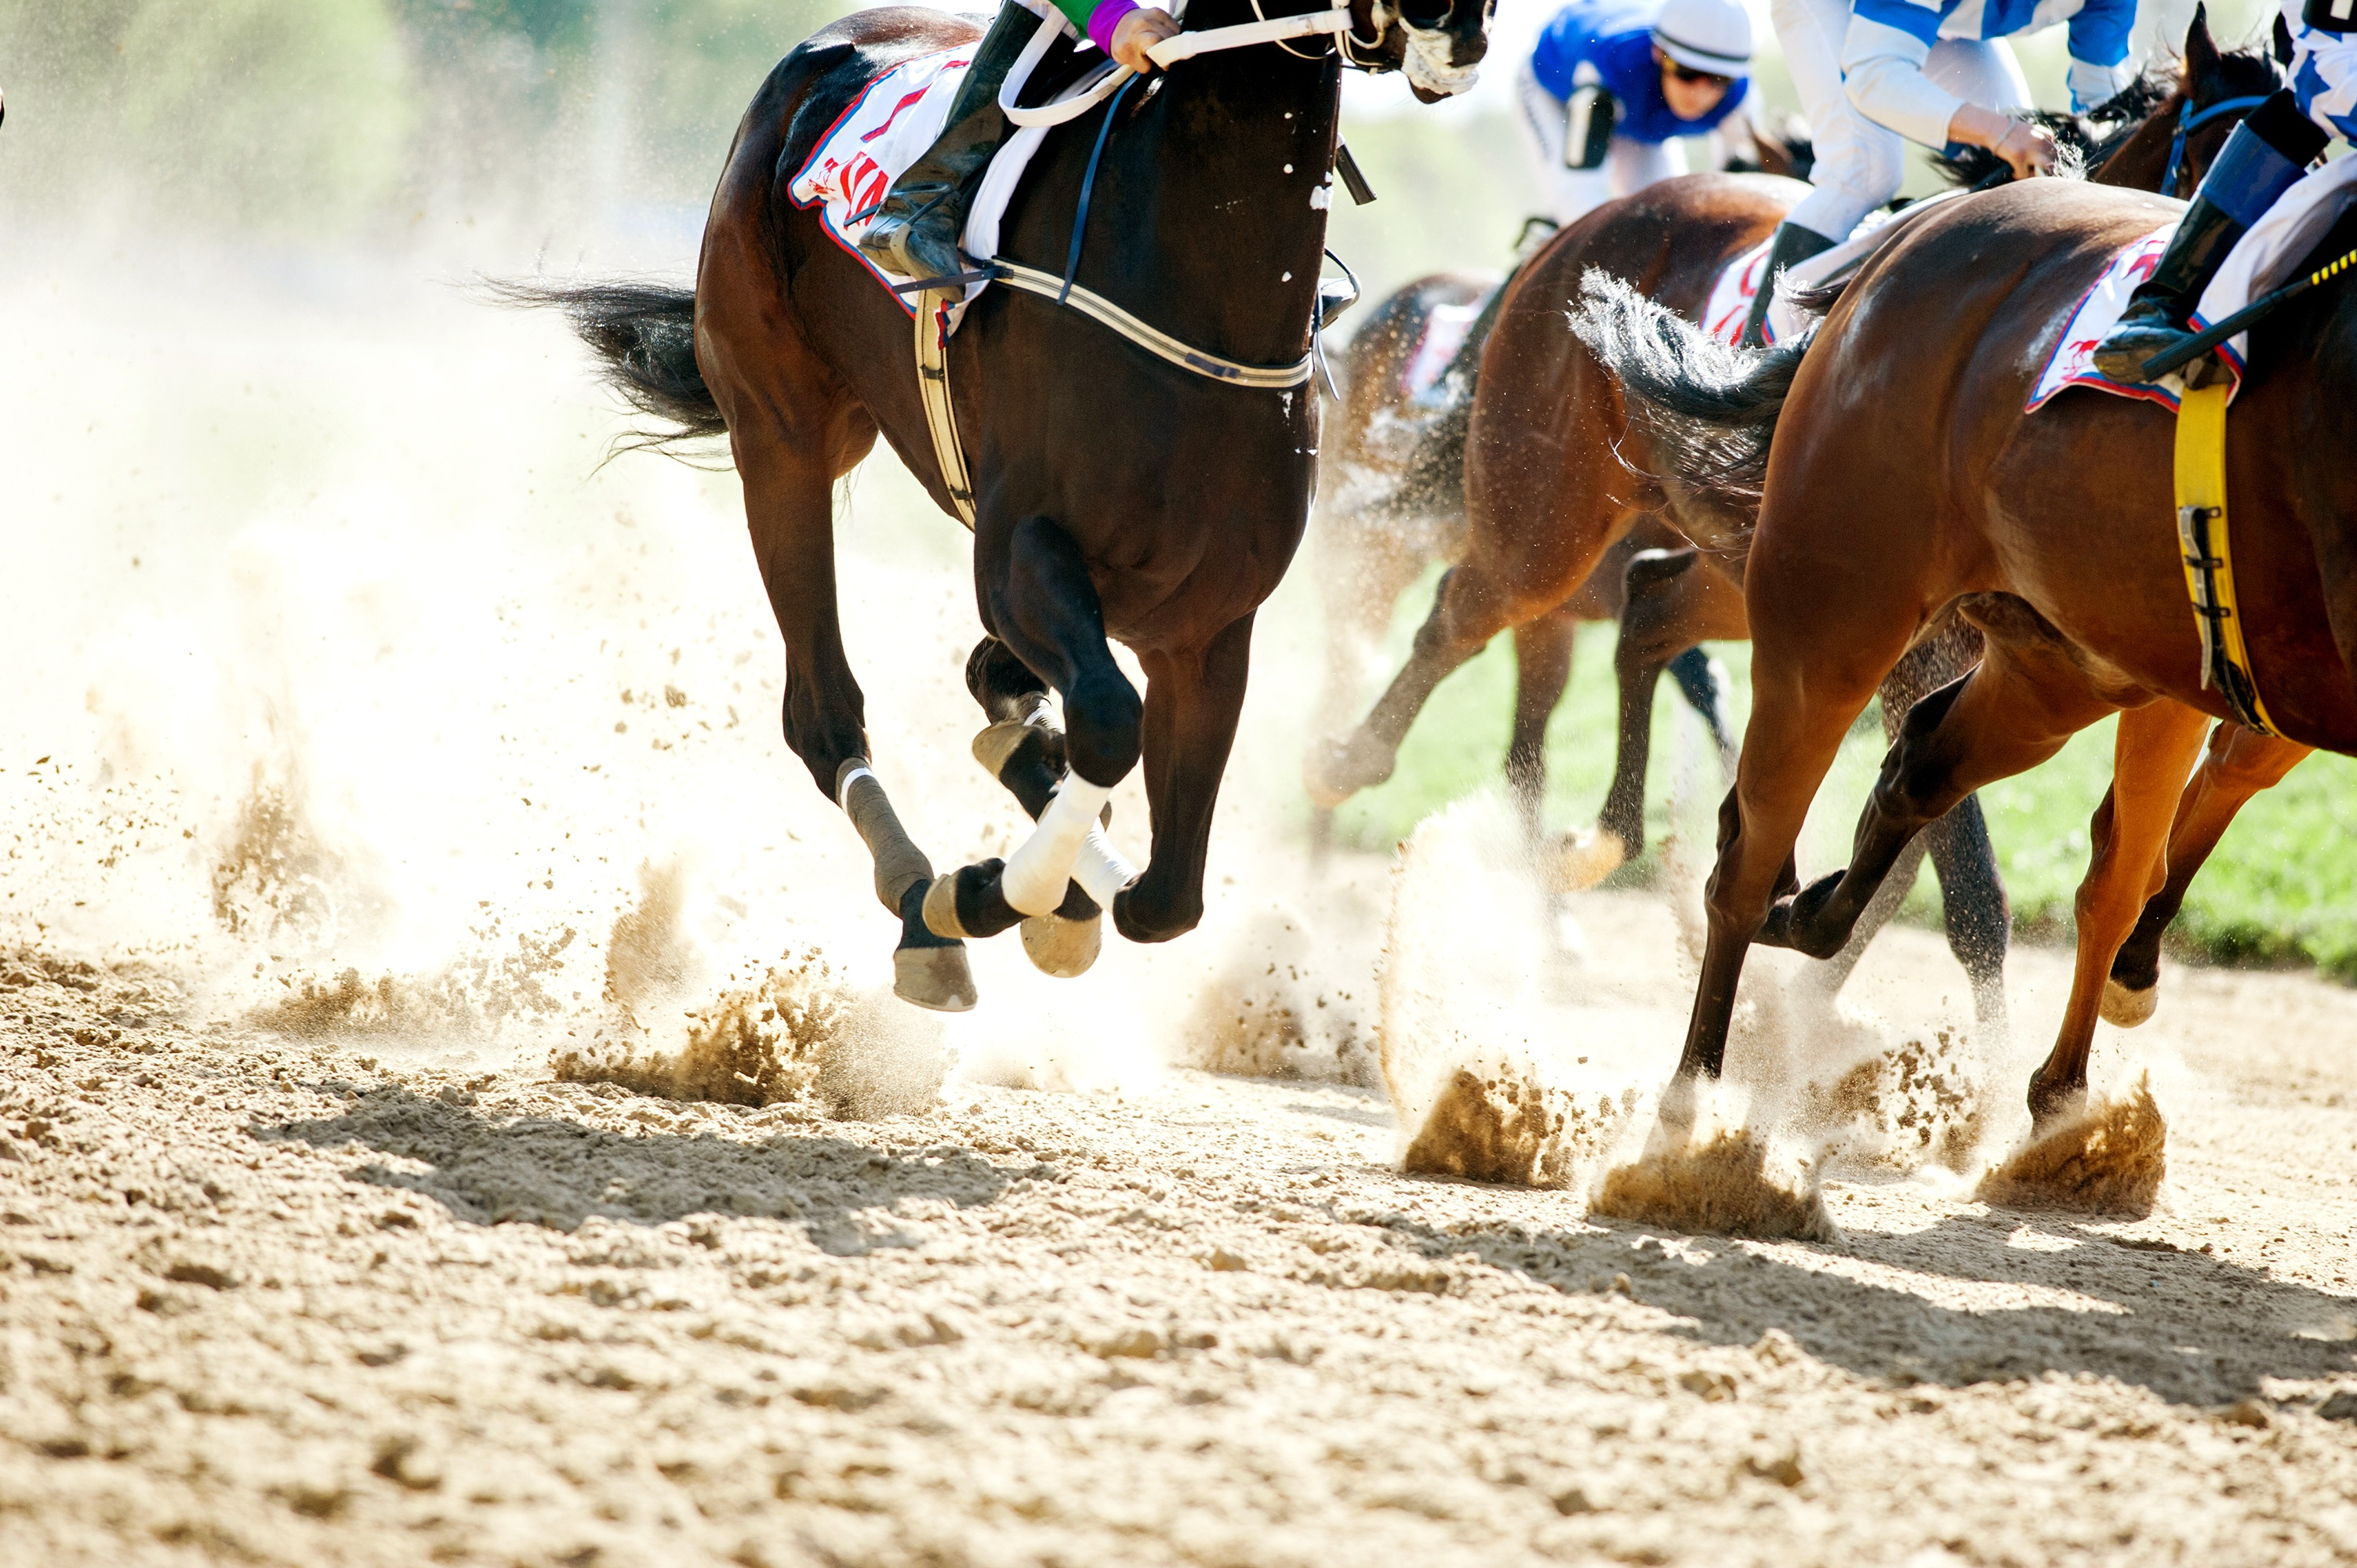 Top 10 Horse Racing Tracks In The World